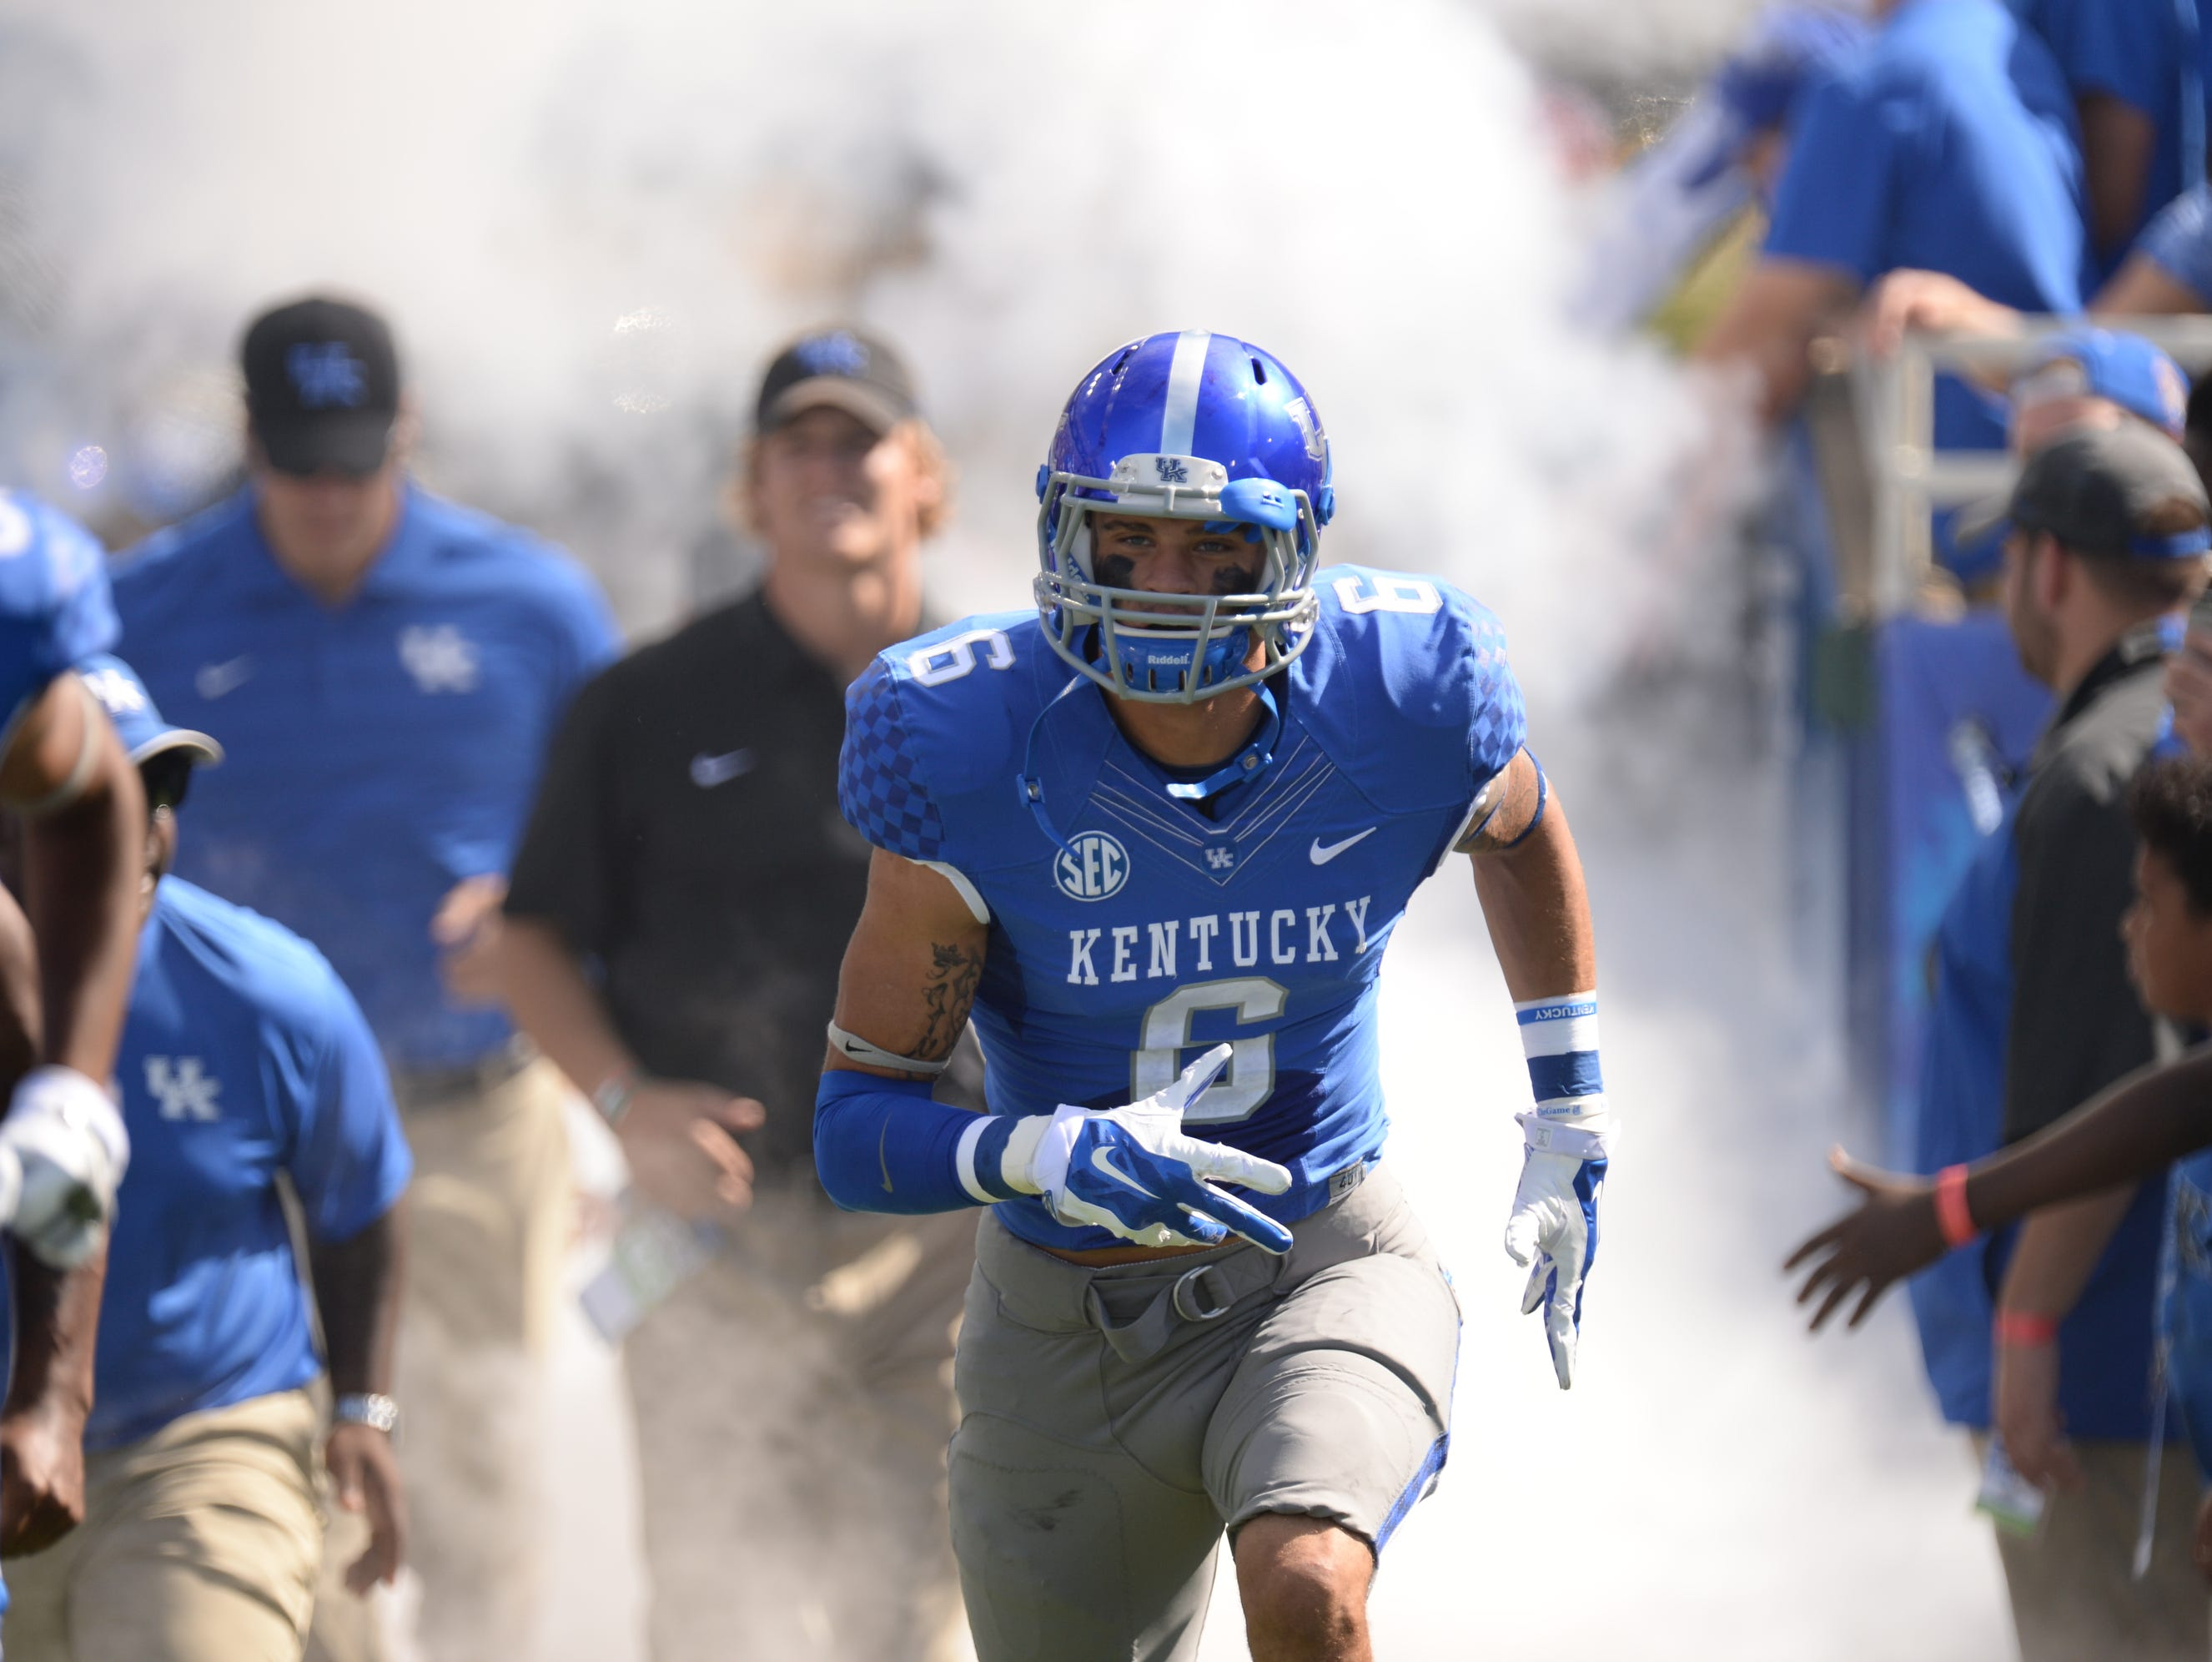 Freshman WR Blake Bone runs out of the tunnel before the University of Kentucky Football game against the Vanderbilt Commodores in Lexington, KY. Saturday, September 27, 2014.